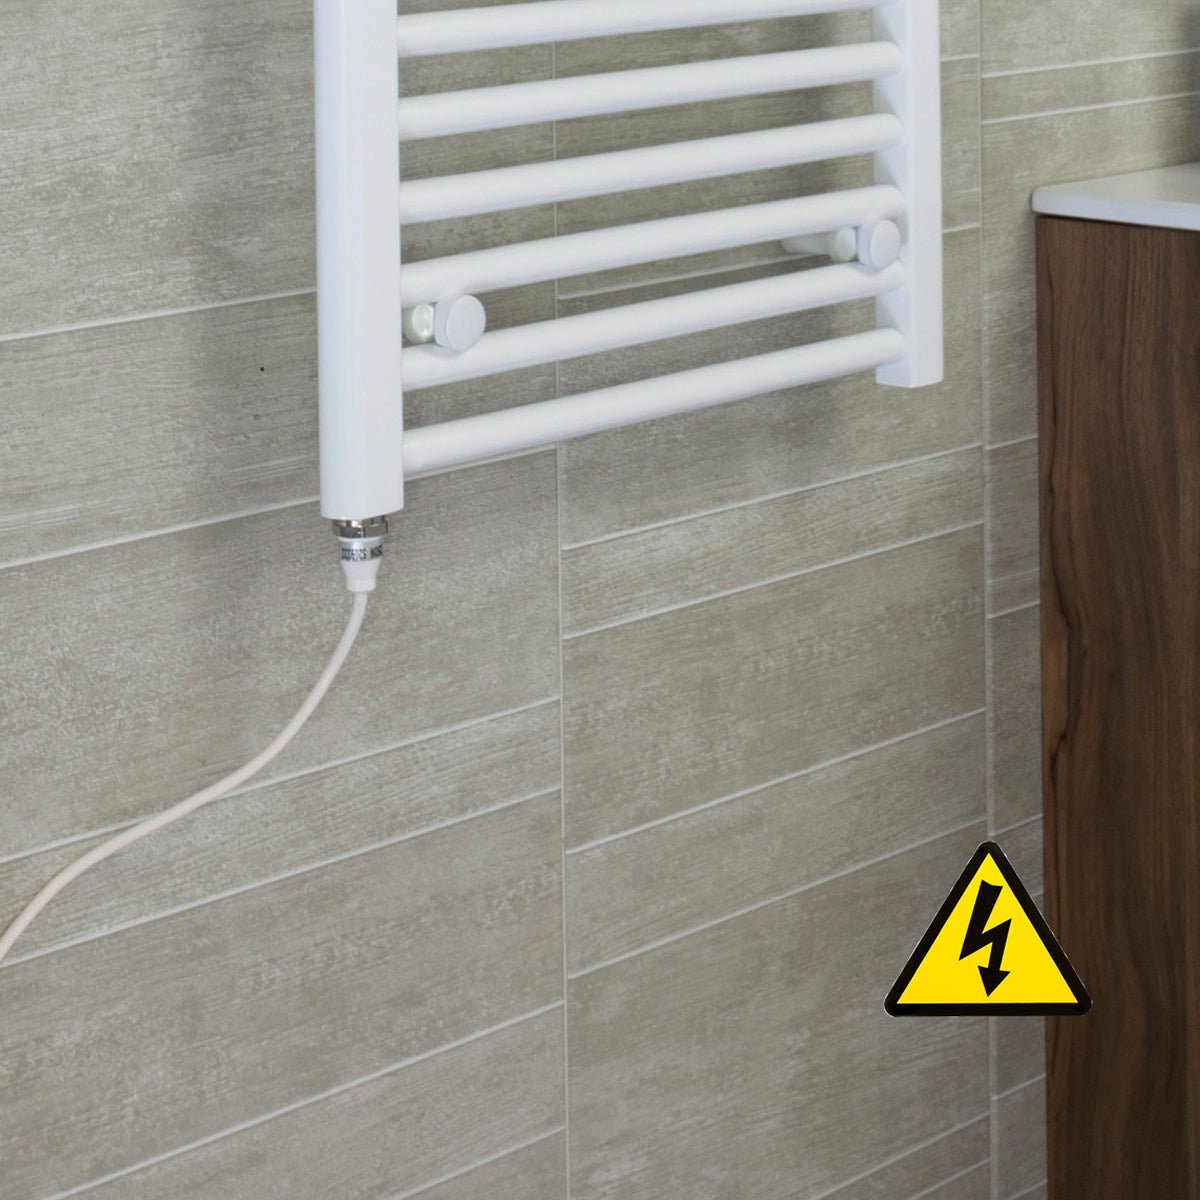 750mm Wide 800mm High Pre-Filled White Electric Towel Rail Radiator With Single Heat Element